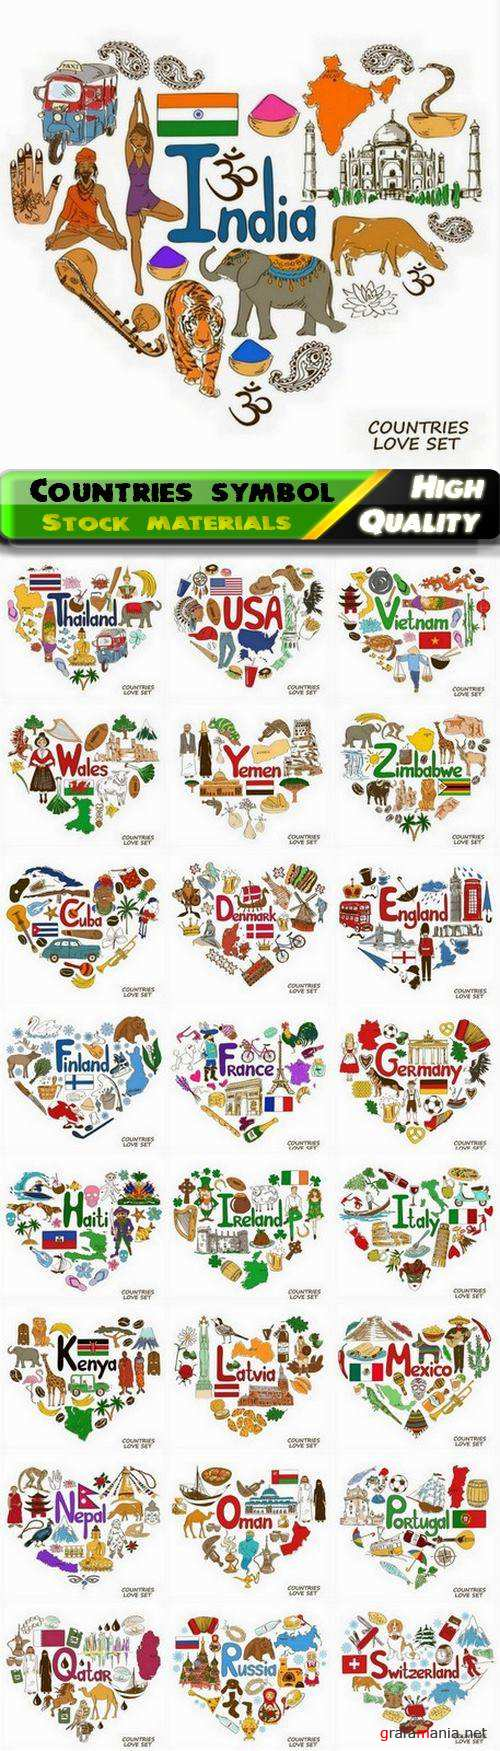 Countries symbol in heart shape and national elements - 25 Eps